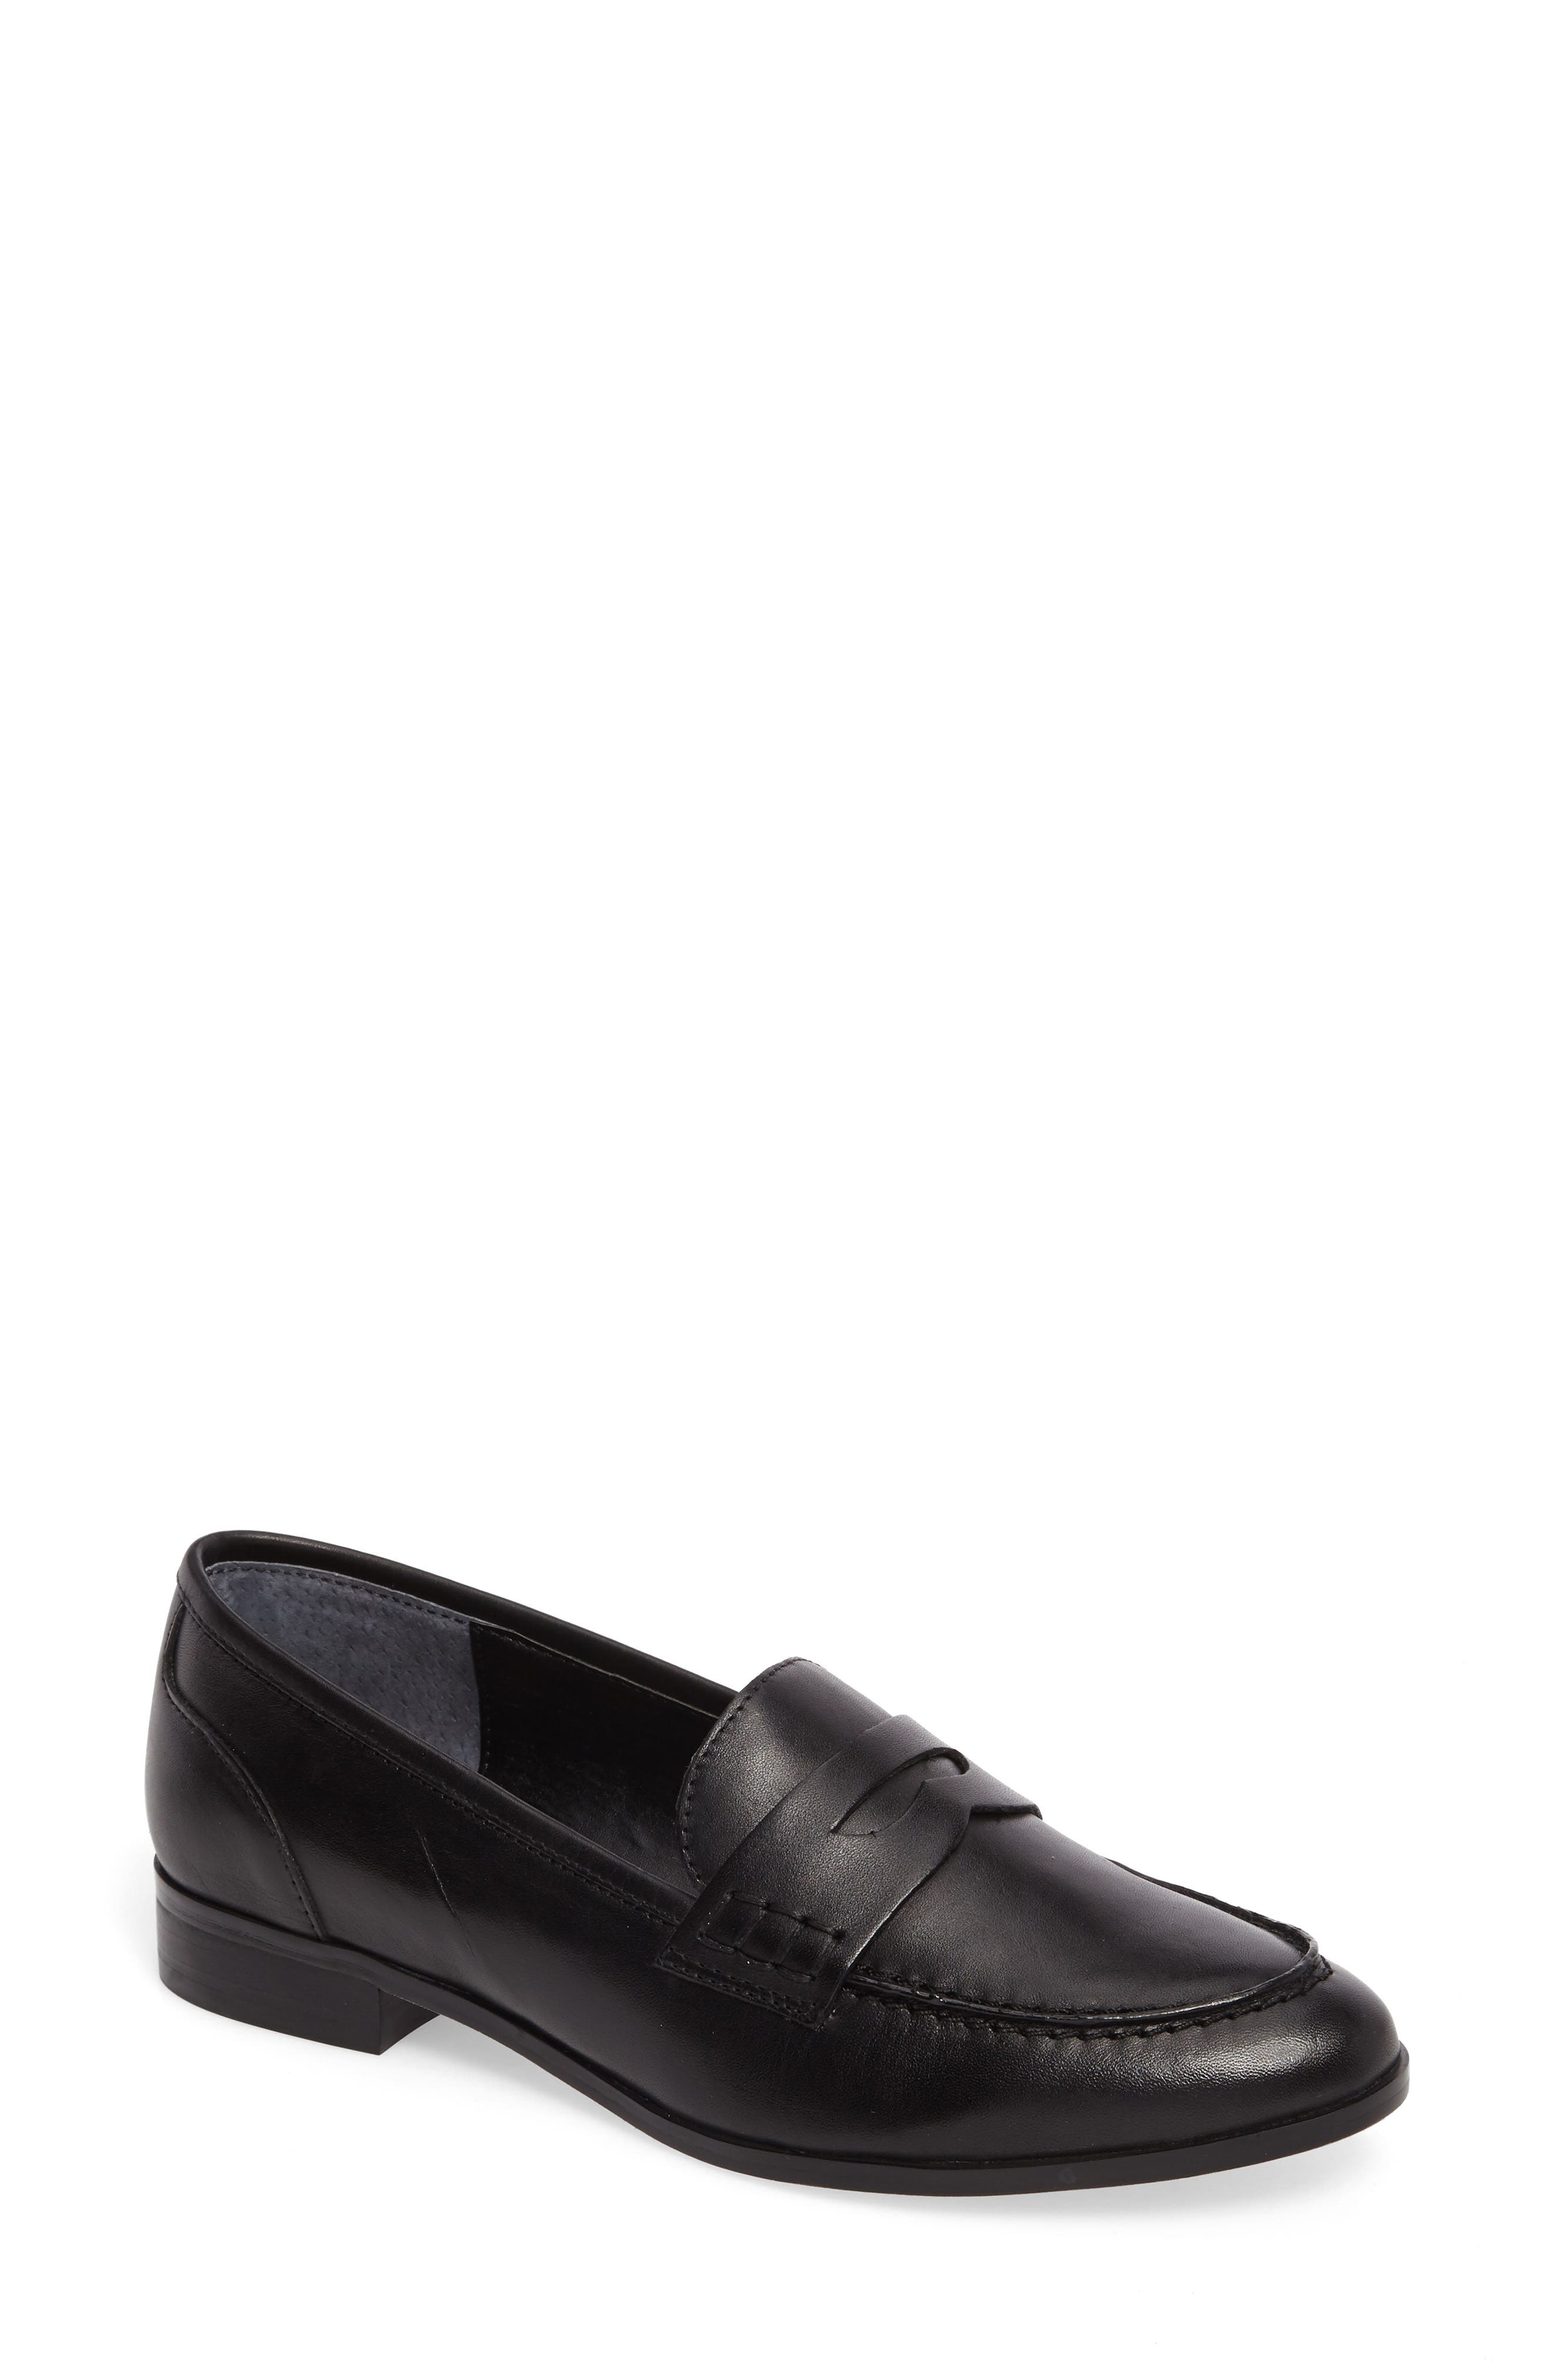 Georgie Penny Loafer,                             Main thumbnail 1, color,